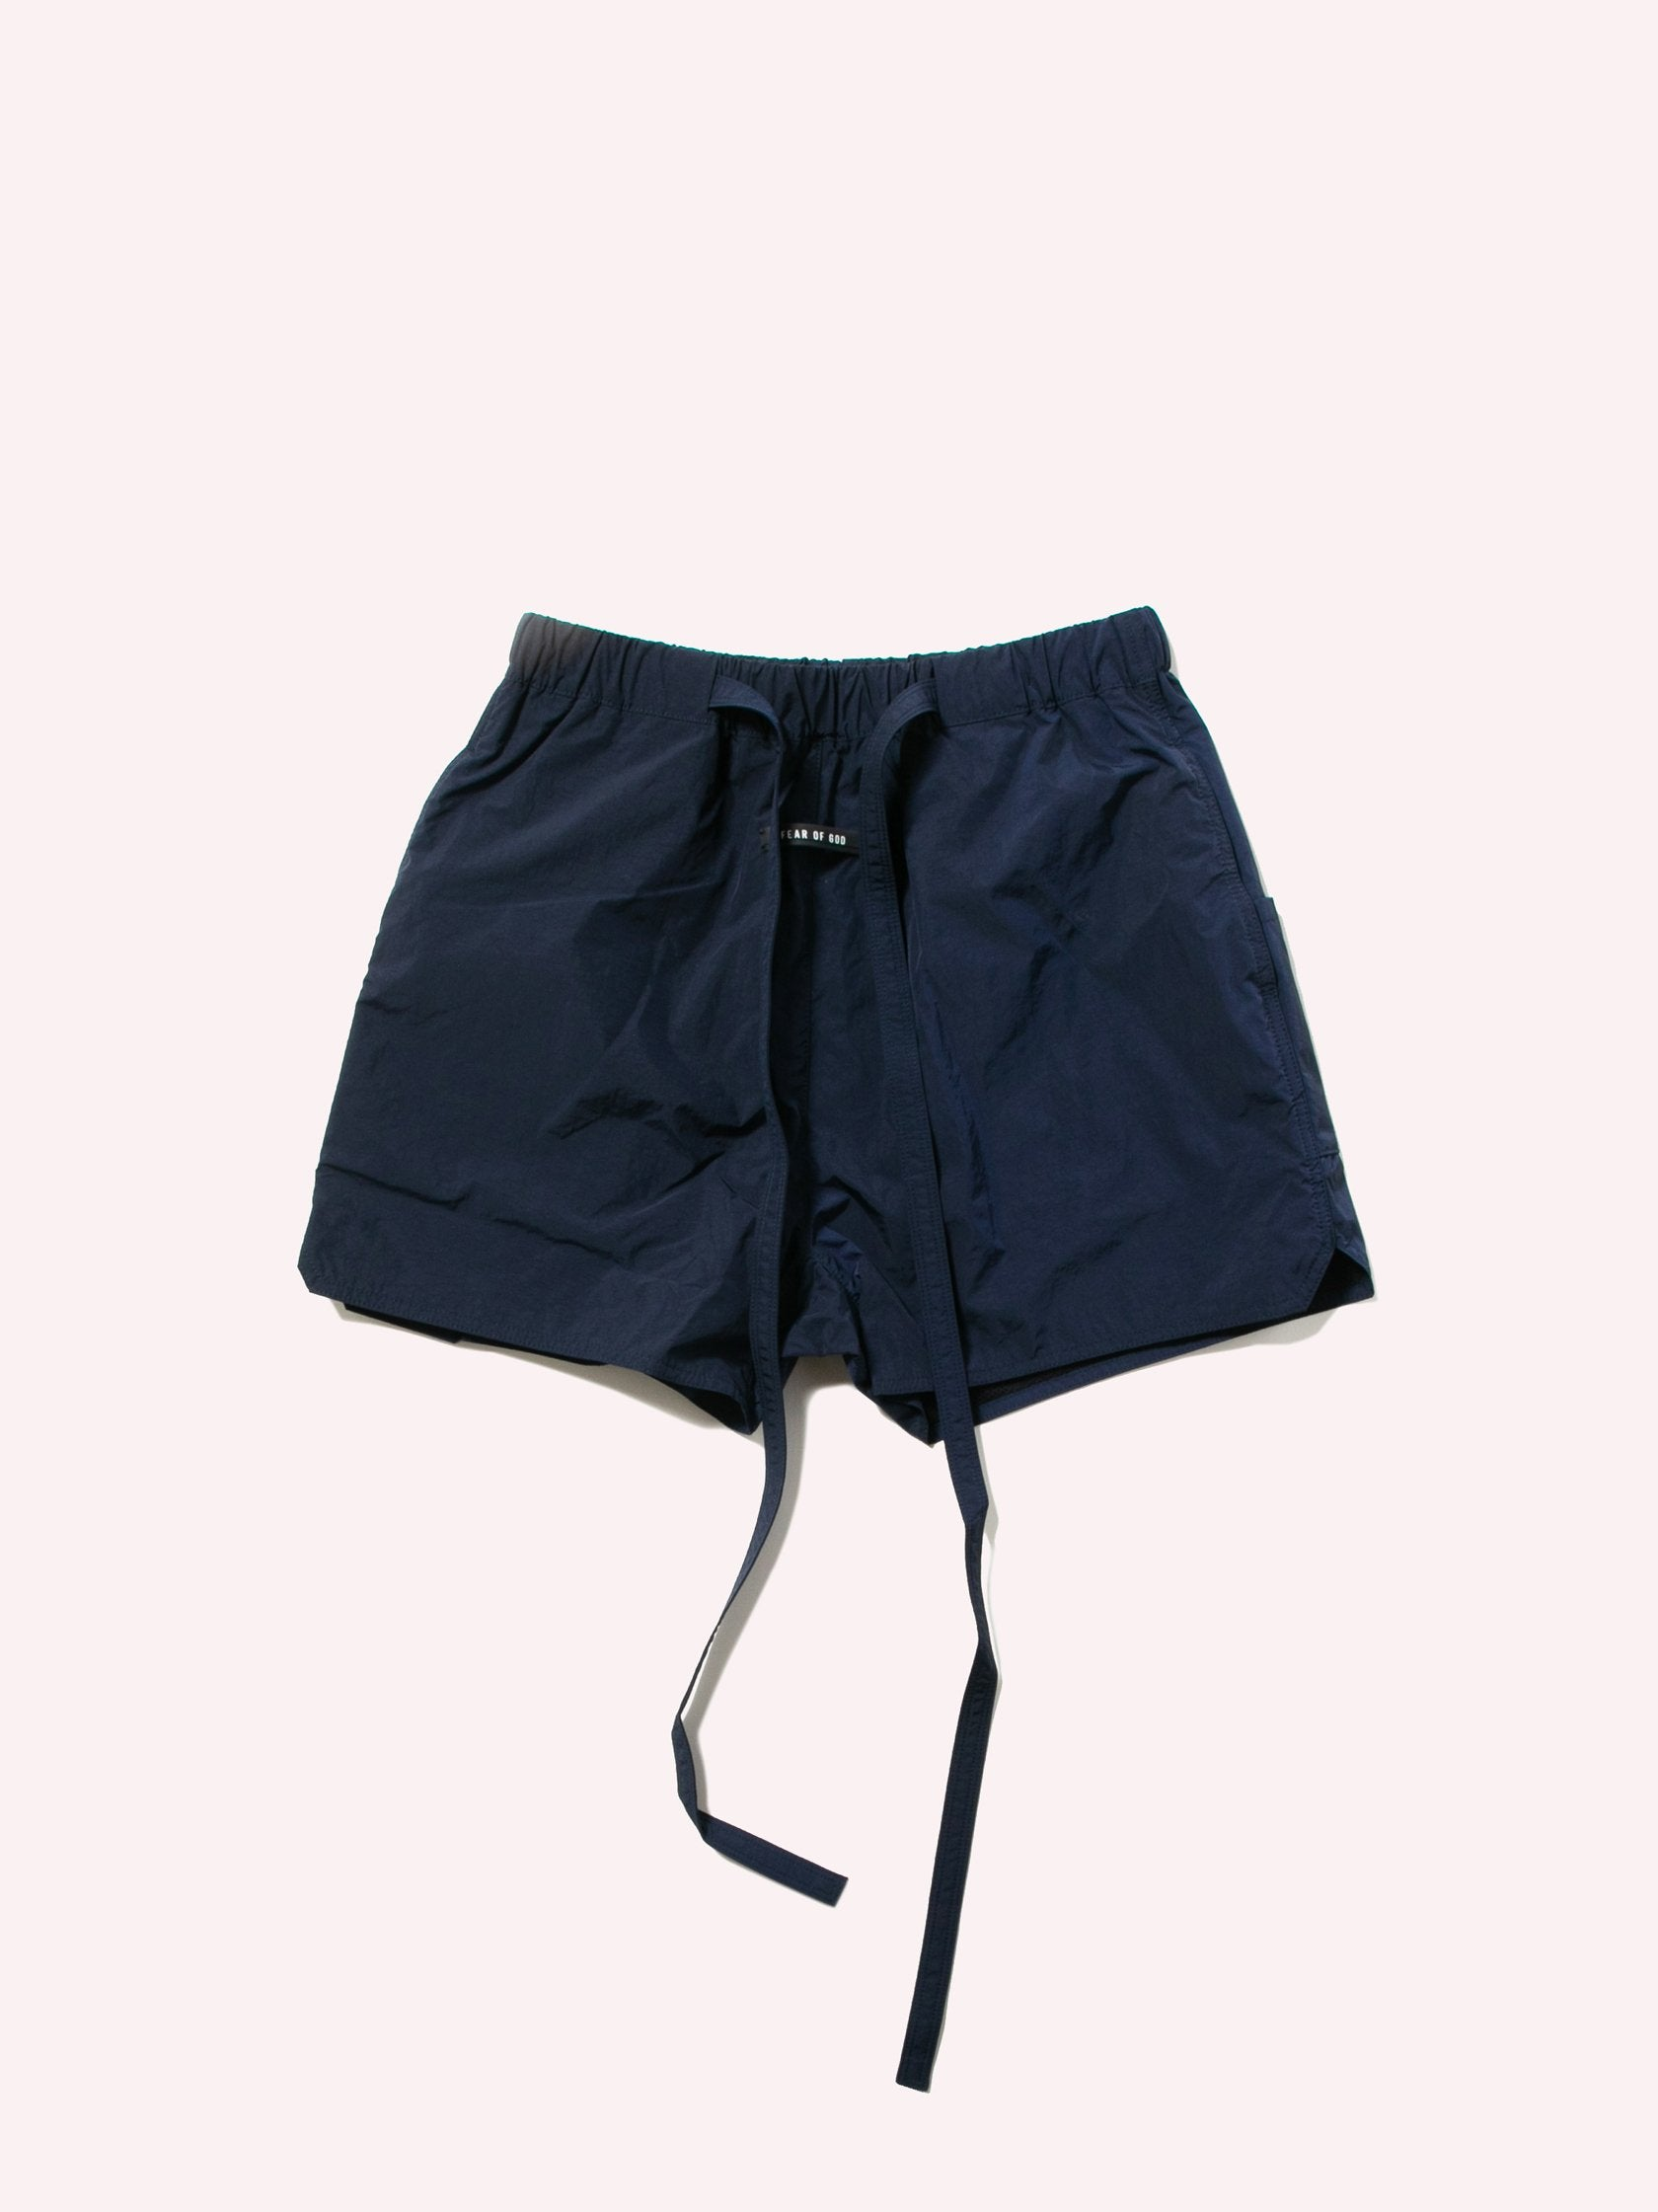 Navy Military Physical Training Shorts 1